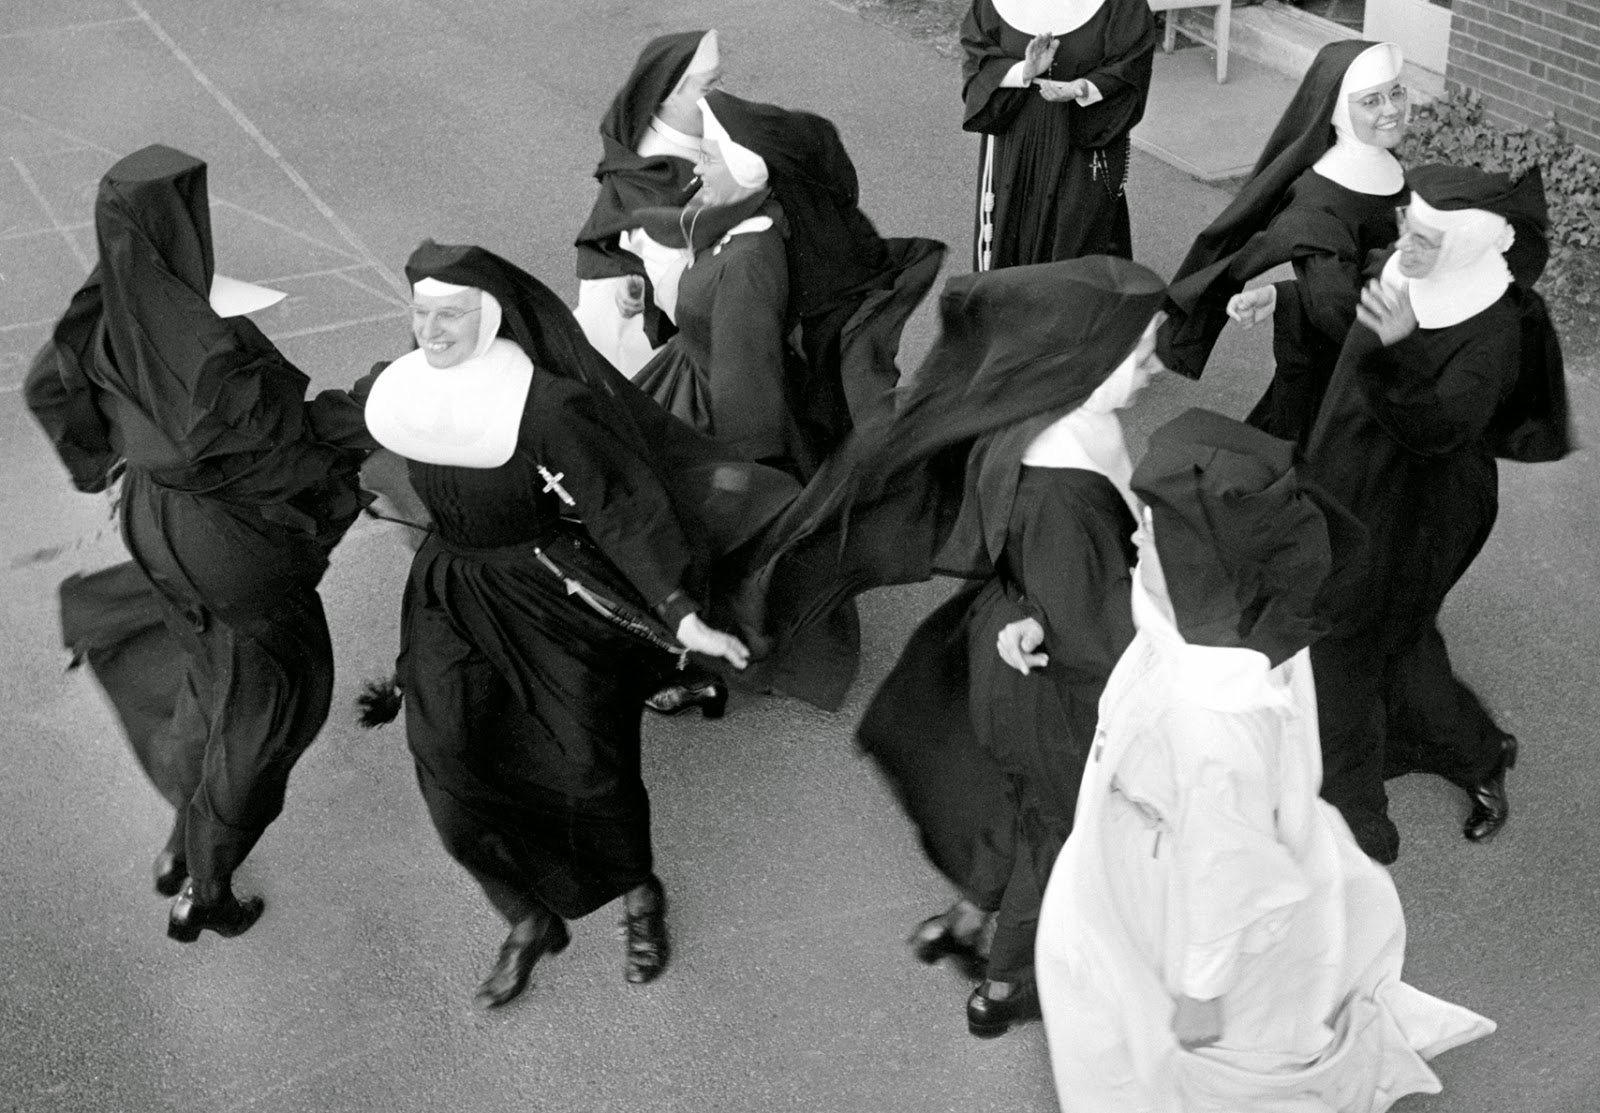 Images of a convent blowjob scene